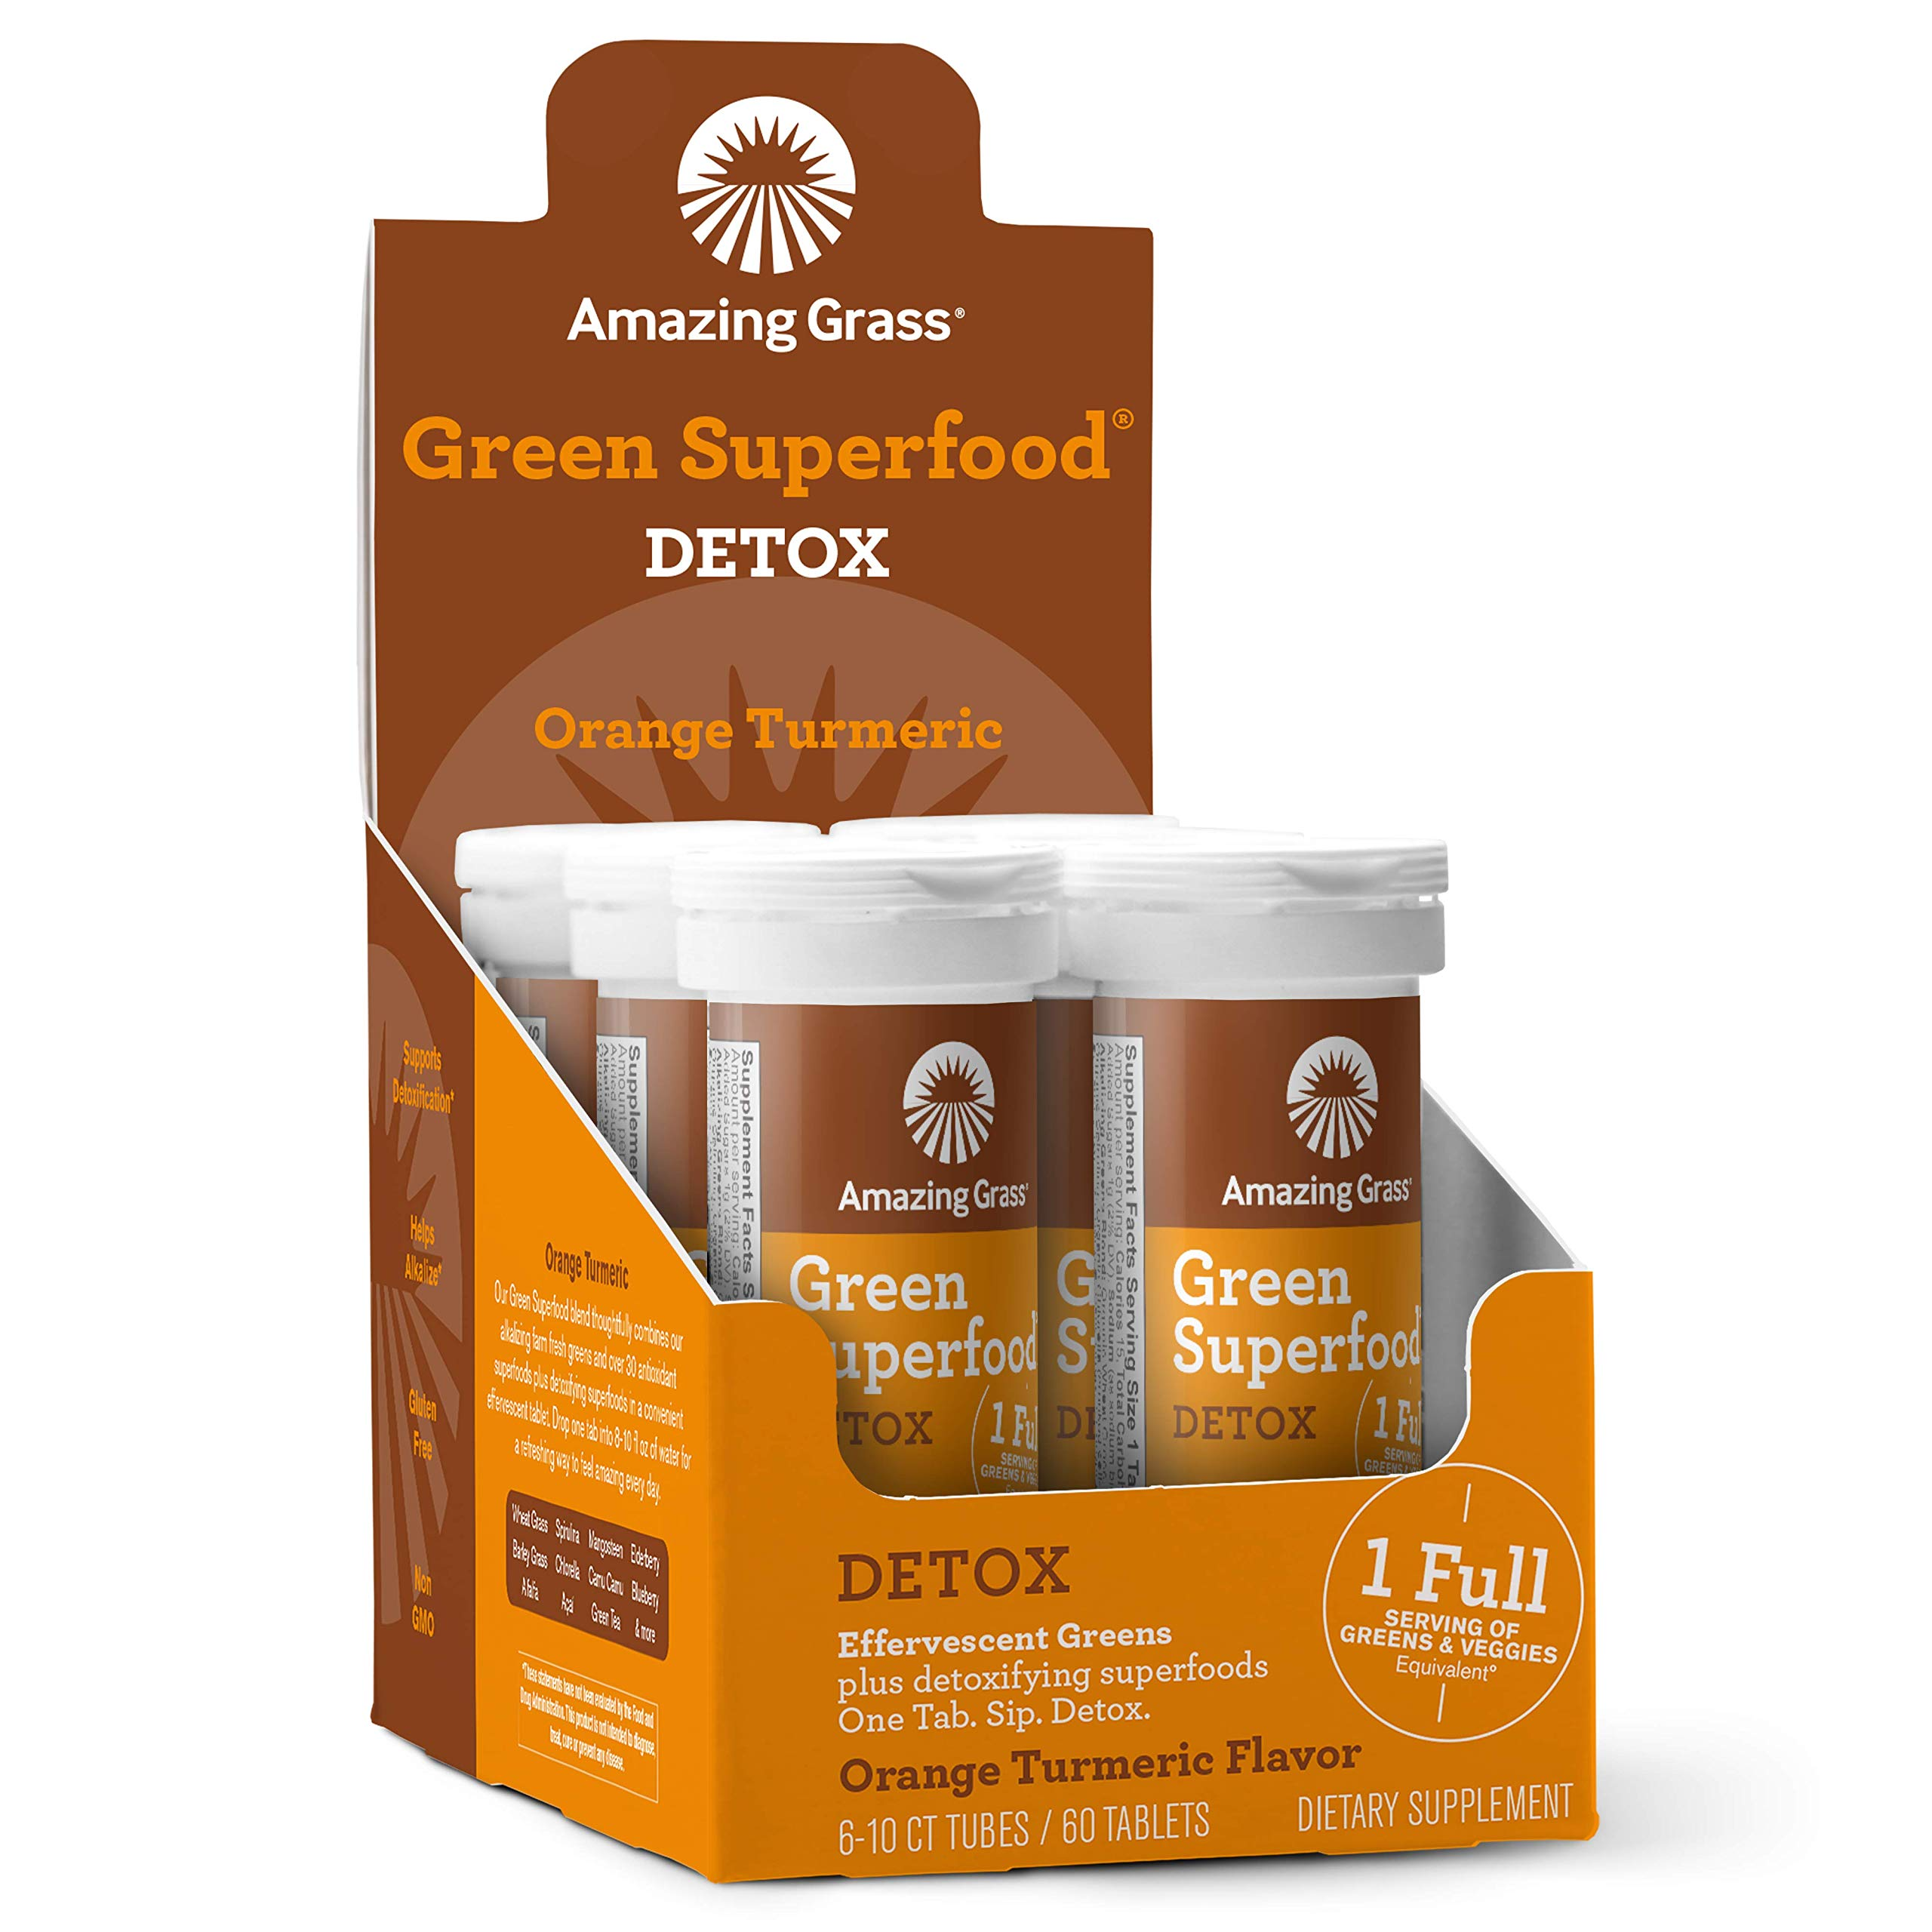 Amazing Grass Green Superfood Detox: Effervescent Detoxifying Drink Tablets, Turmeric for Inflammation support, Antioxidants for full body recovery, Orange Turmeric Flavor, 60 Servings